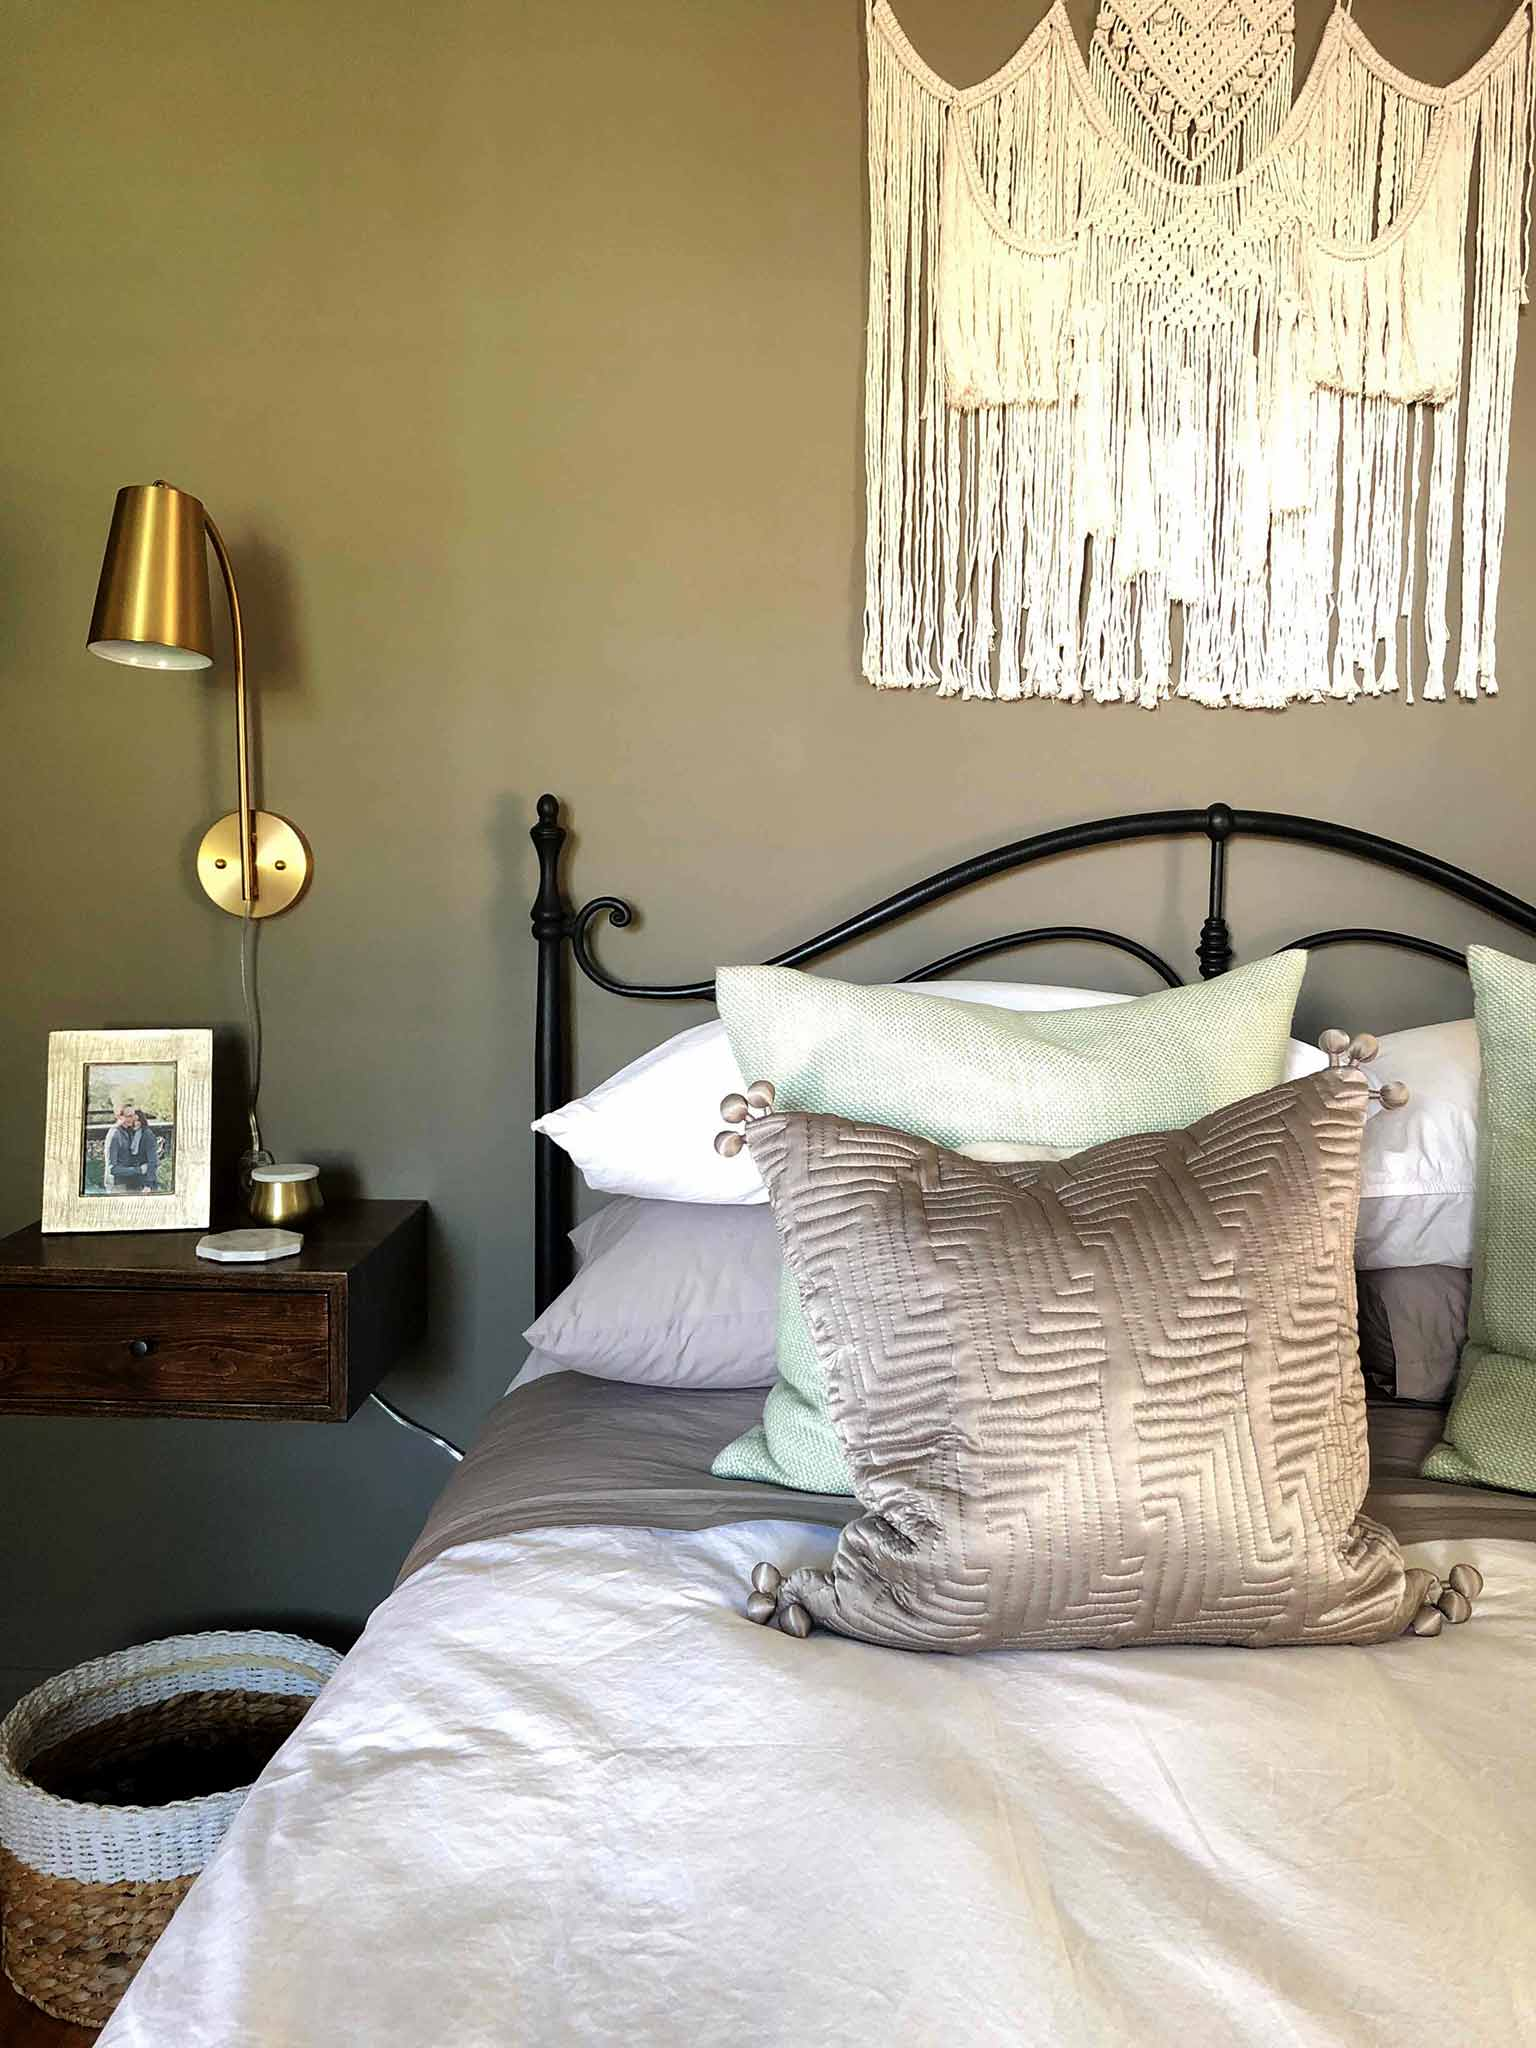 Wall lamp and floating nightstand - One Room Challenge Master Bedroom - That Homebird Life Blog